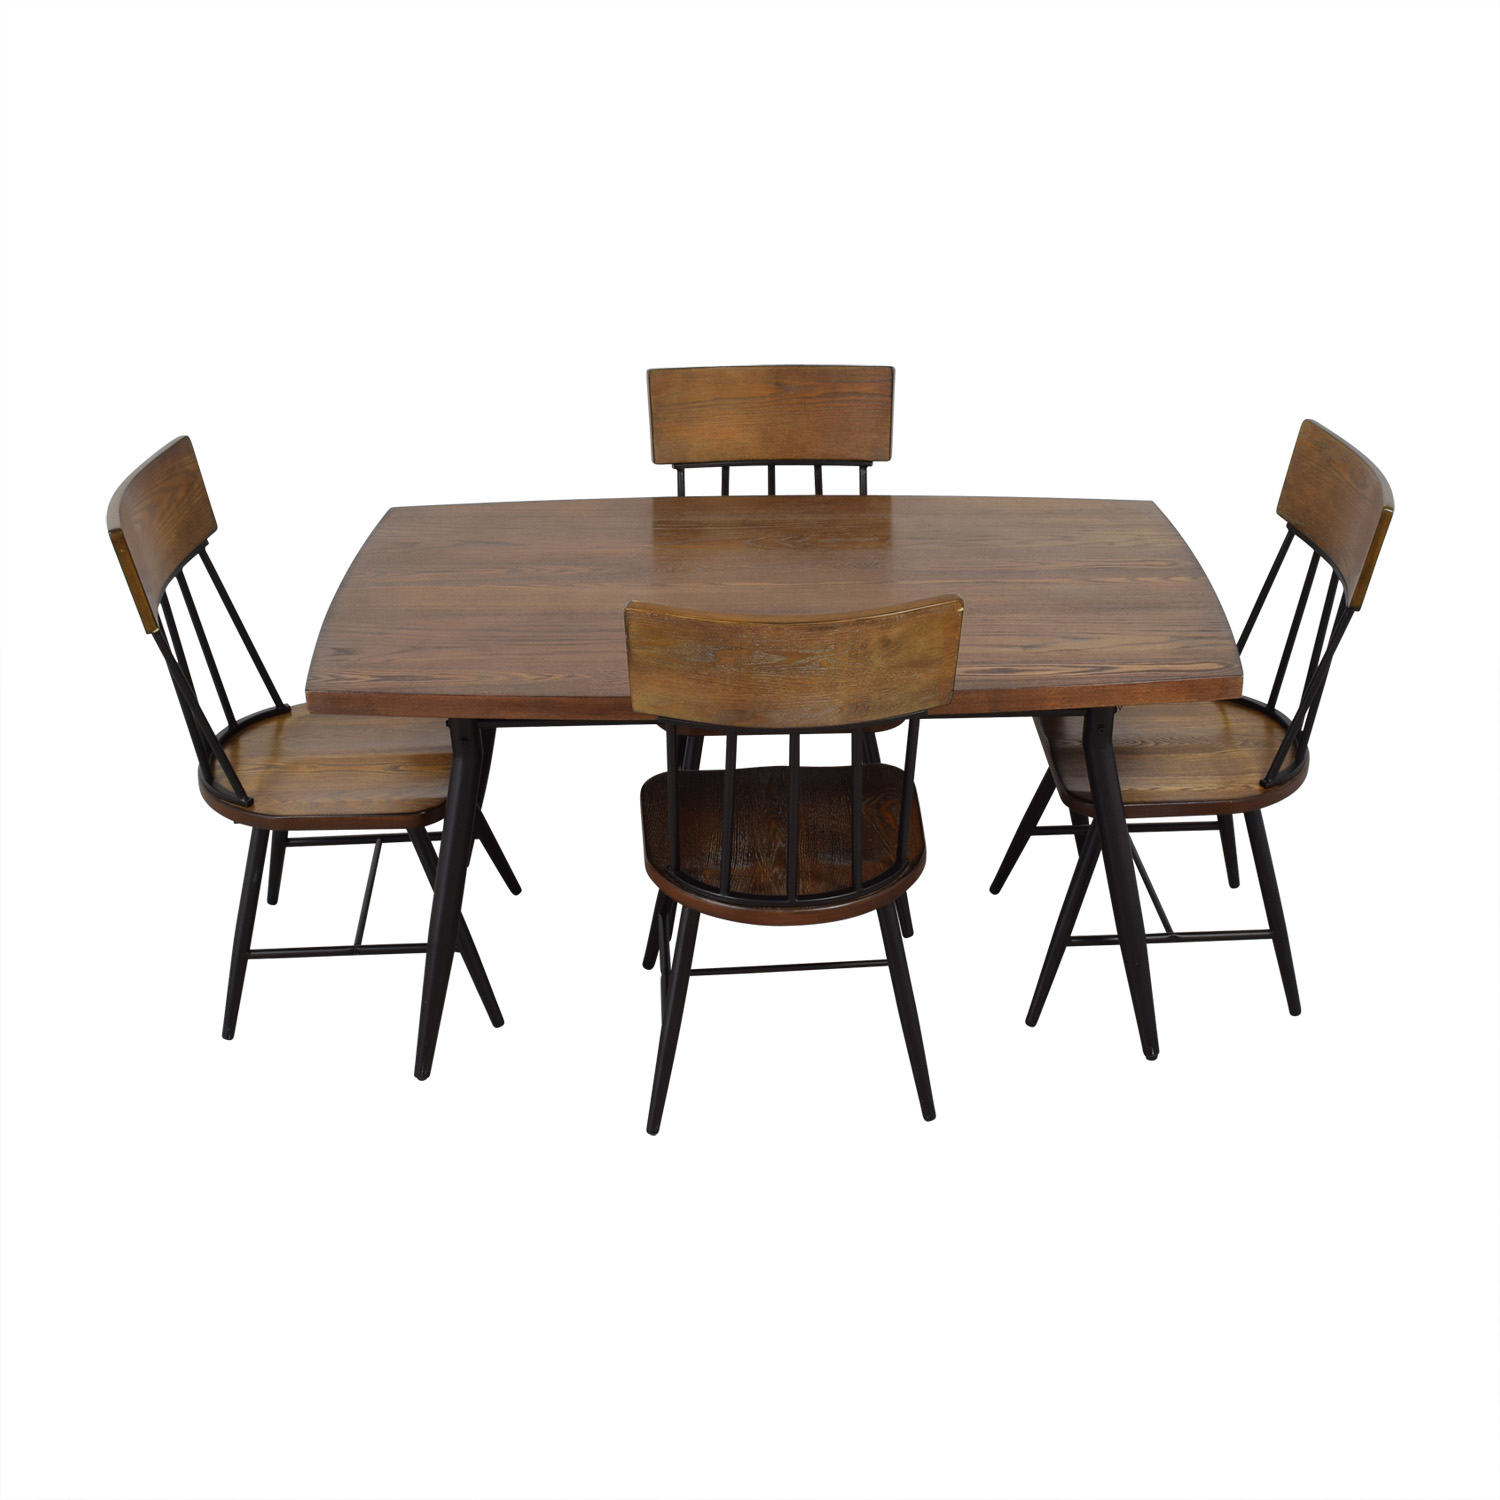 Ashley Furniture Ashley Furniture Wood Dining Room Table and Chair Set discount